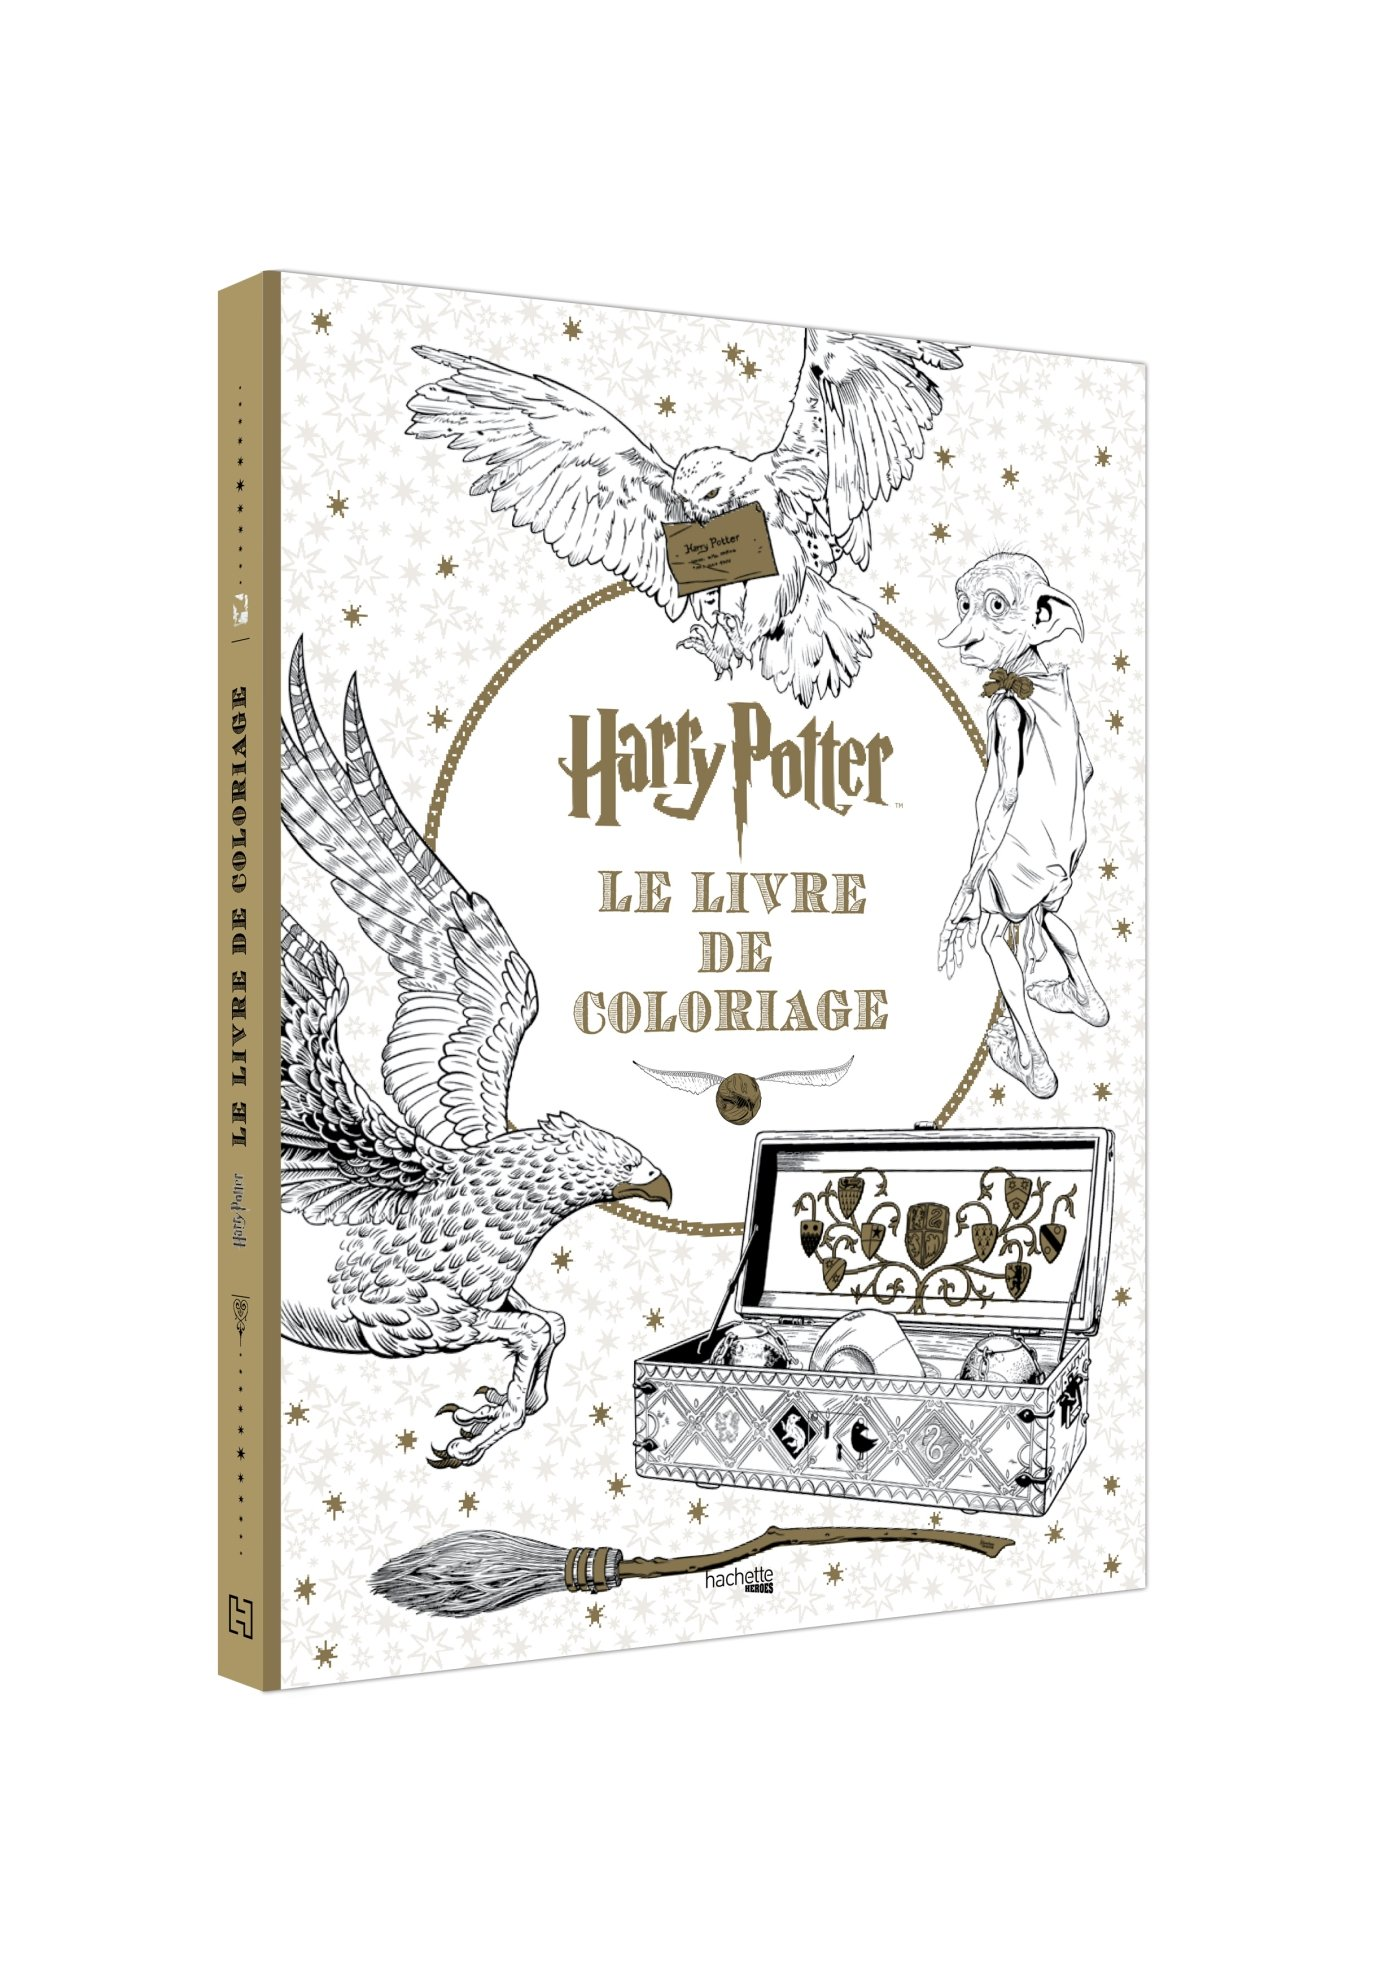 Haut Coloriage Harry Potter 82 Avec supplémentaire Coloriage Inspiration for Coloriage Harry Potter